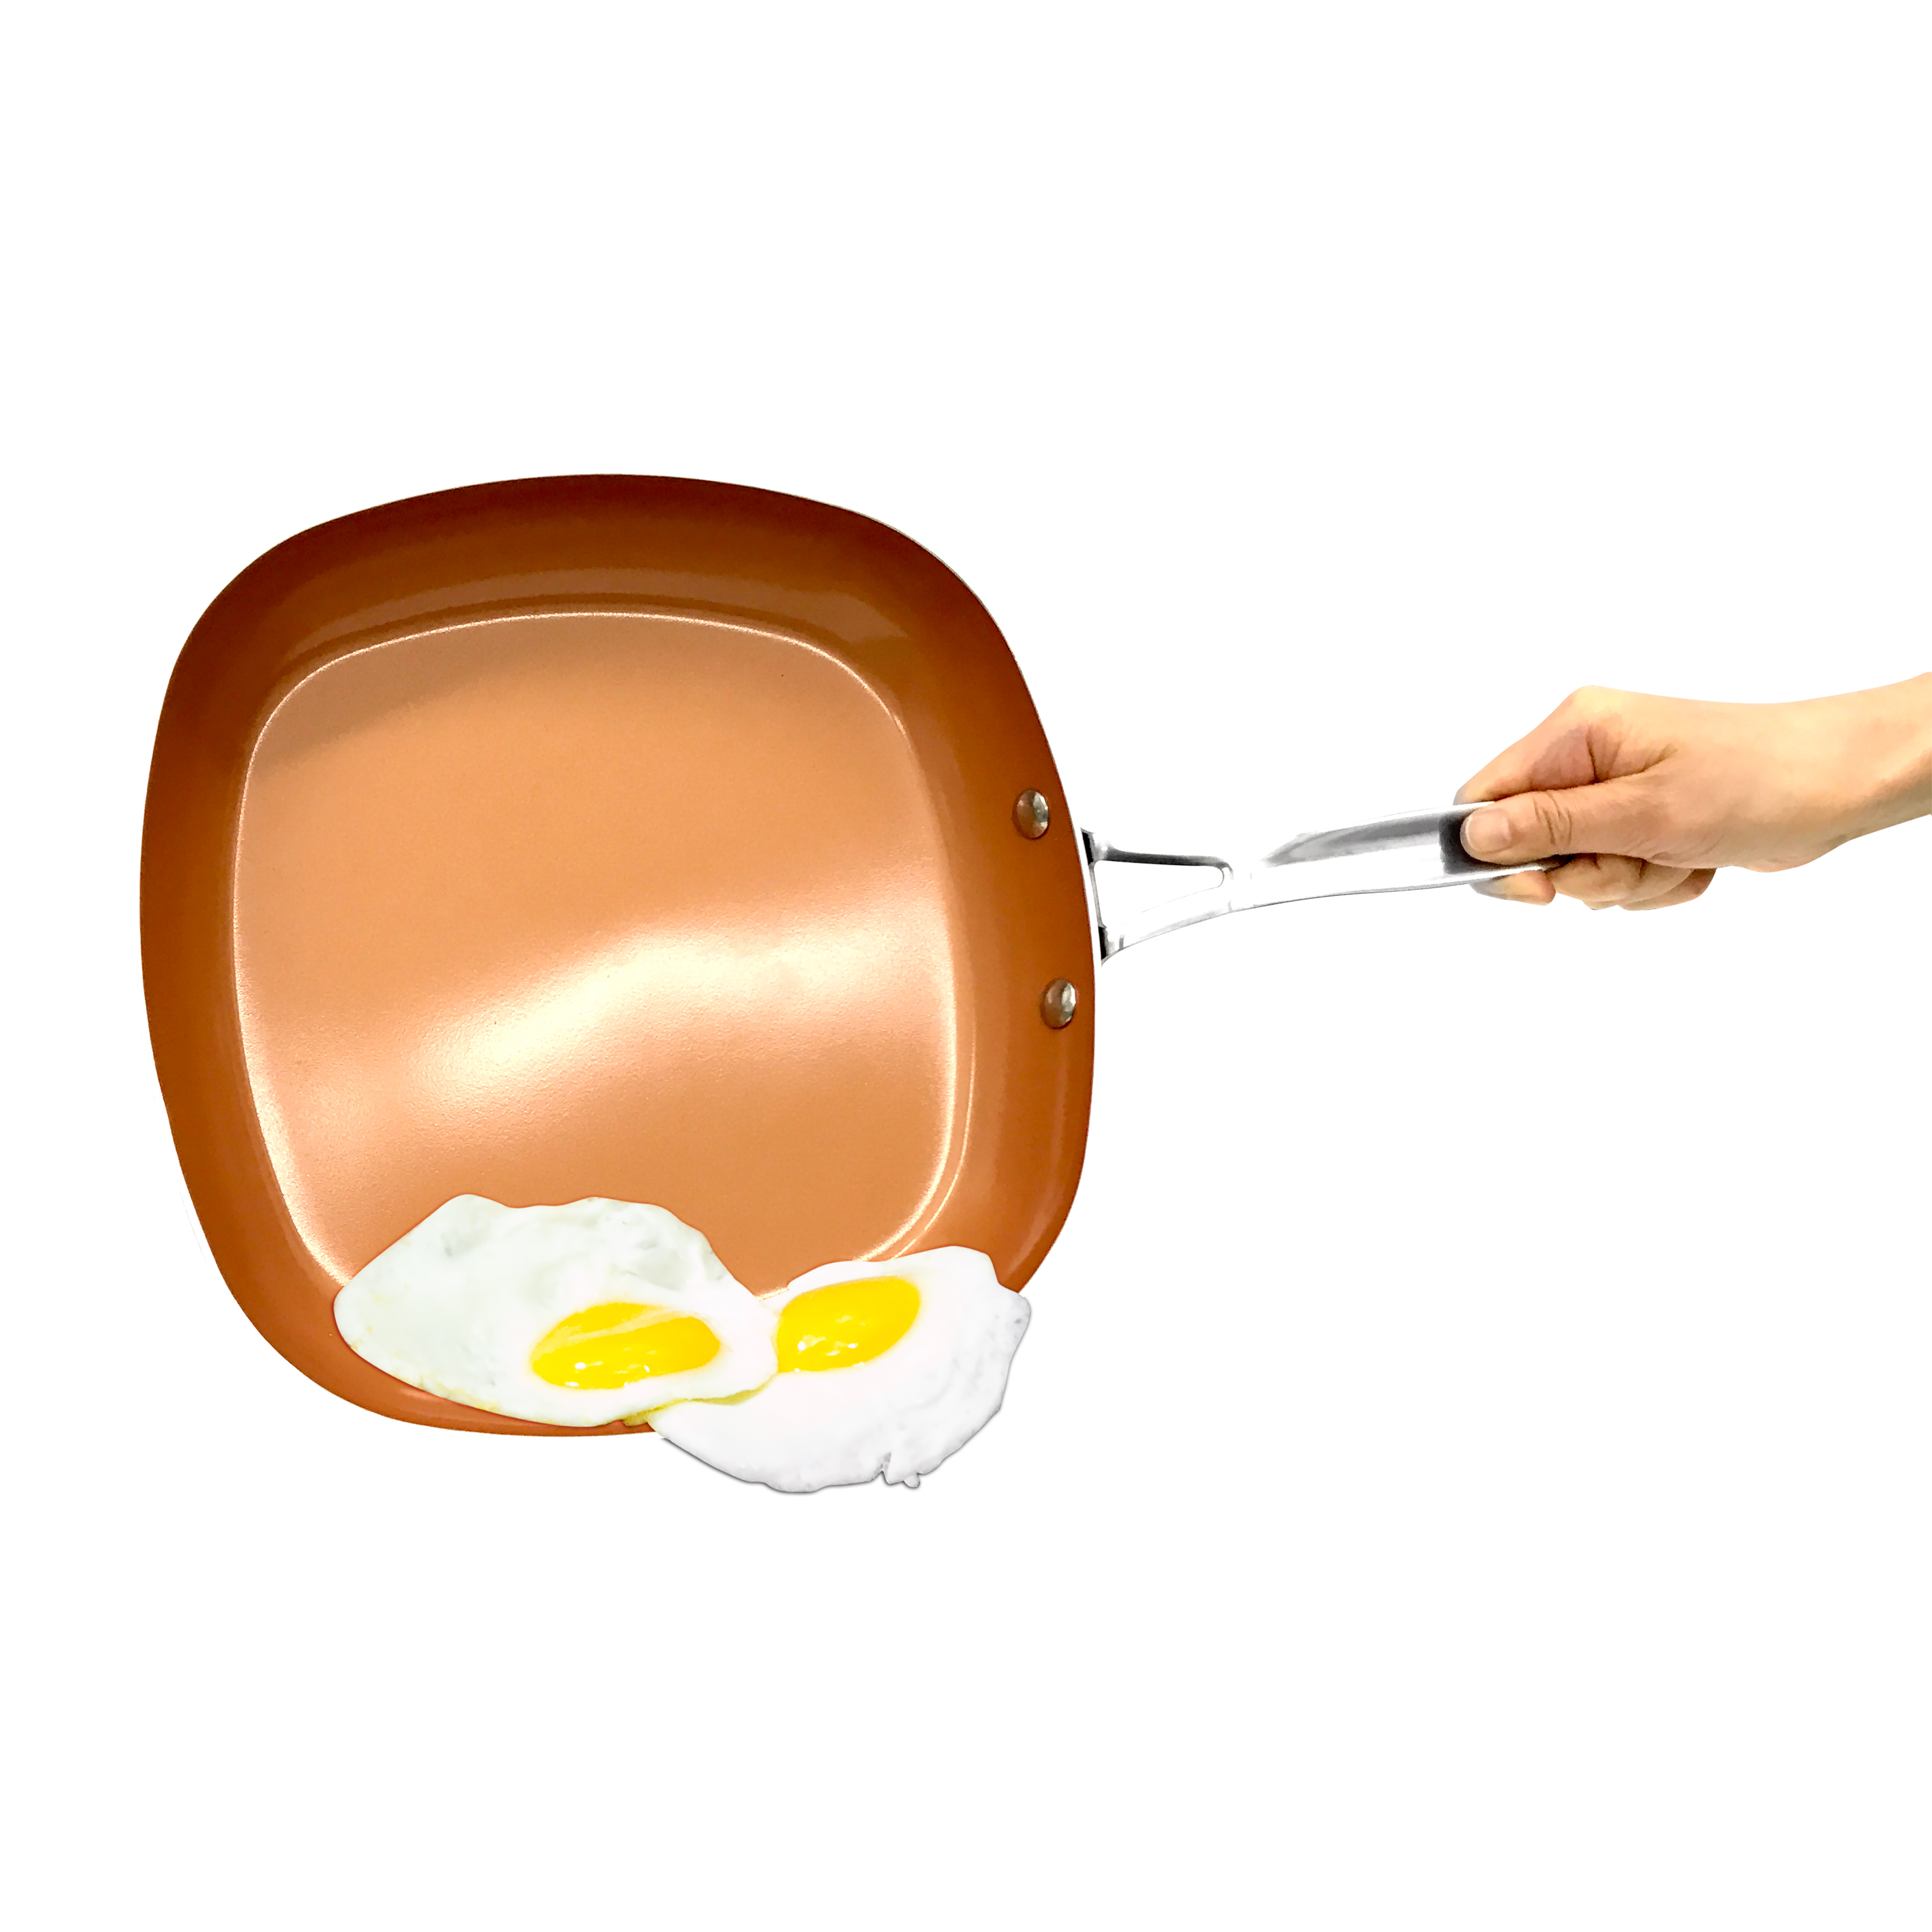 "Gotham Steel 9.5"" Copper Square Frying Pan, 1 Each"